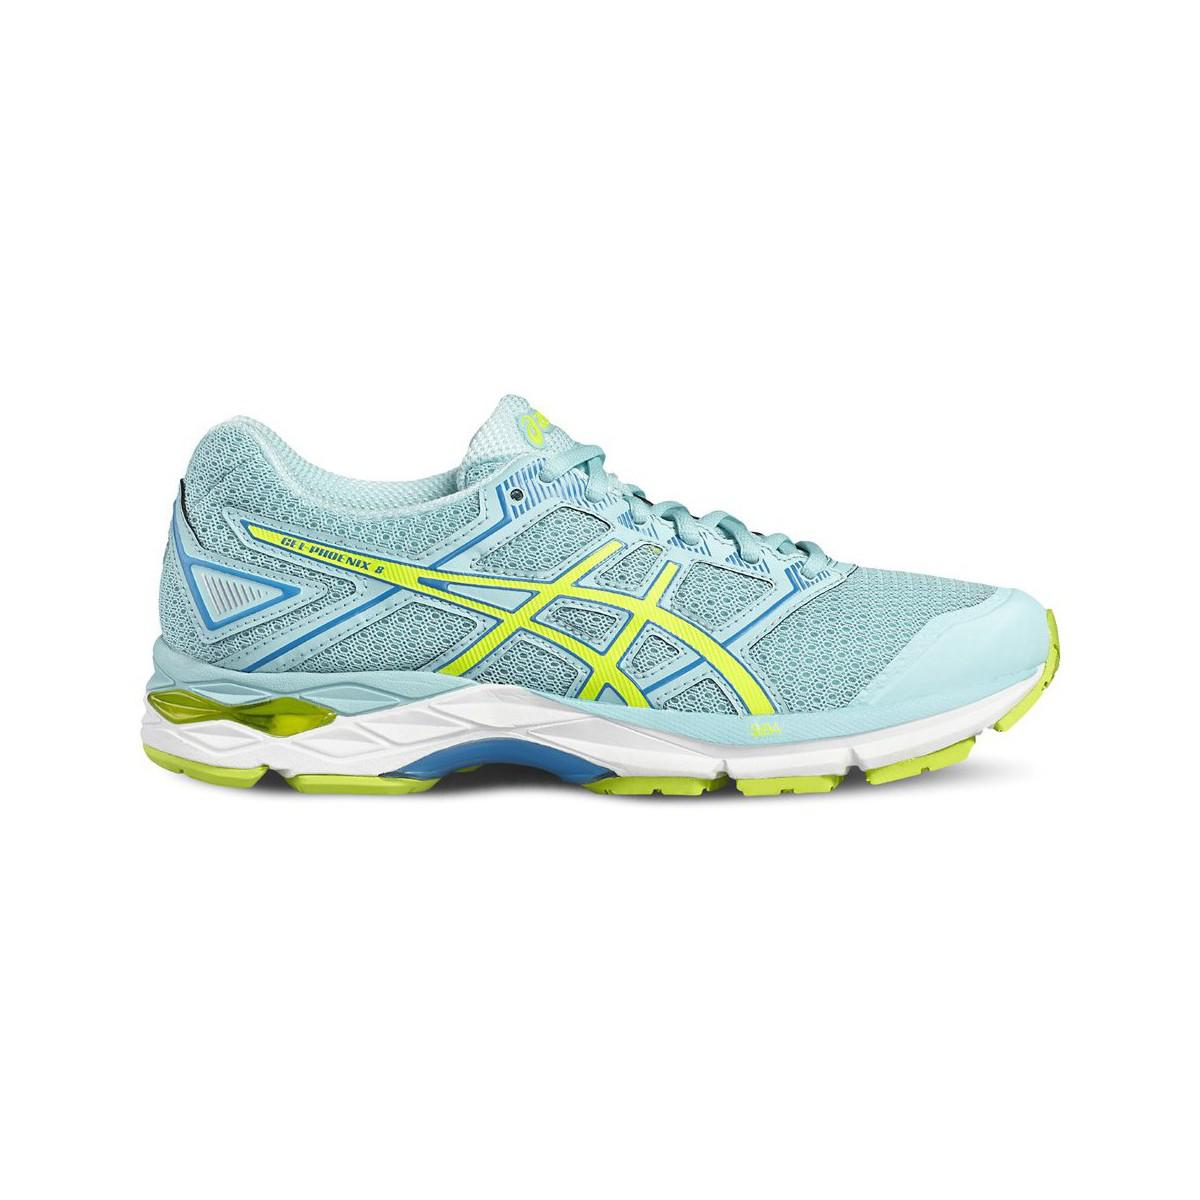 e20bc55612d7 Asics Gel Phoenix 8 Women s Running Trainers In Blue in Blue - Lyst